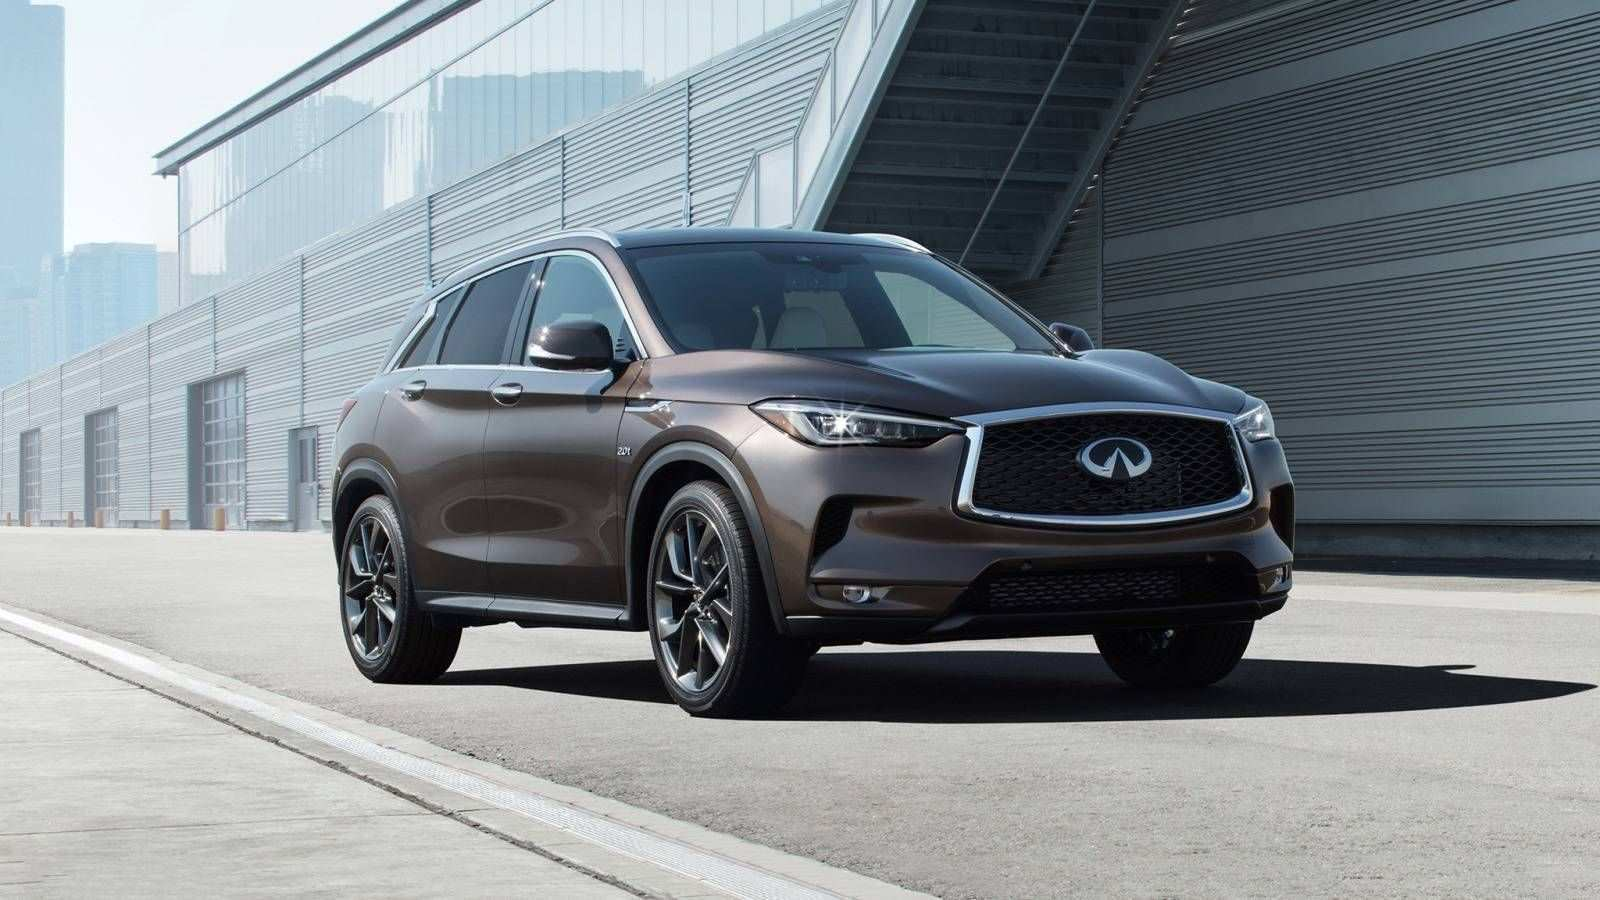 37 New 2019 Infiniti Qx50 Weight Overview for 2019 Infiniti Qx50 Weight